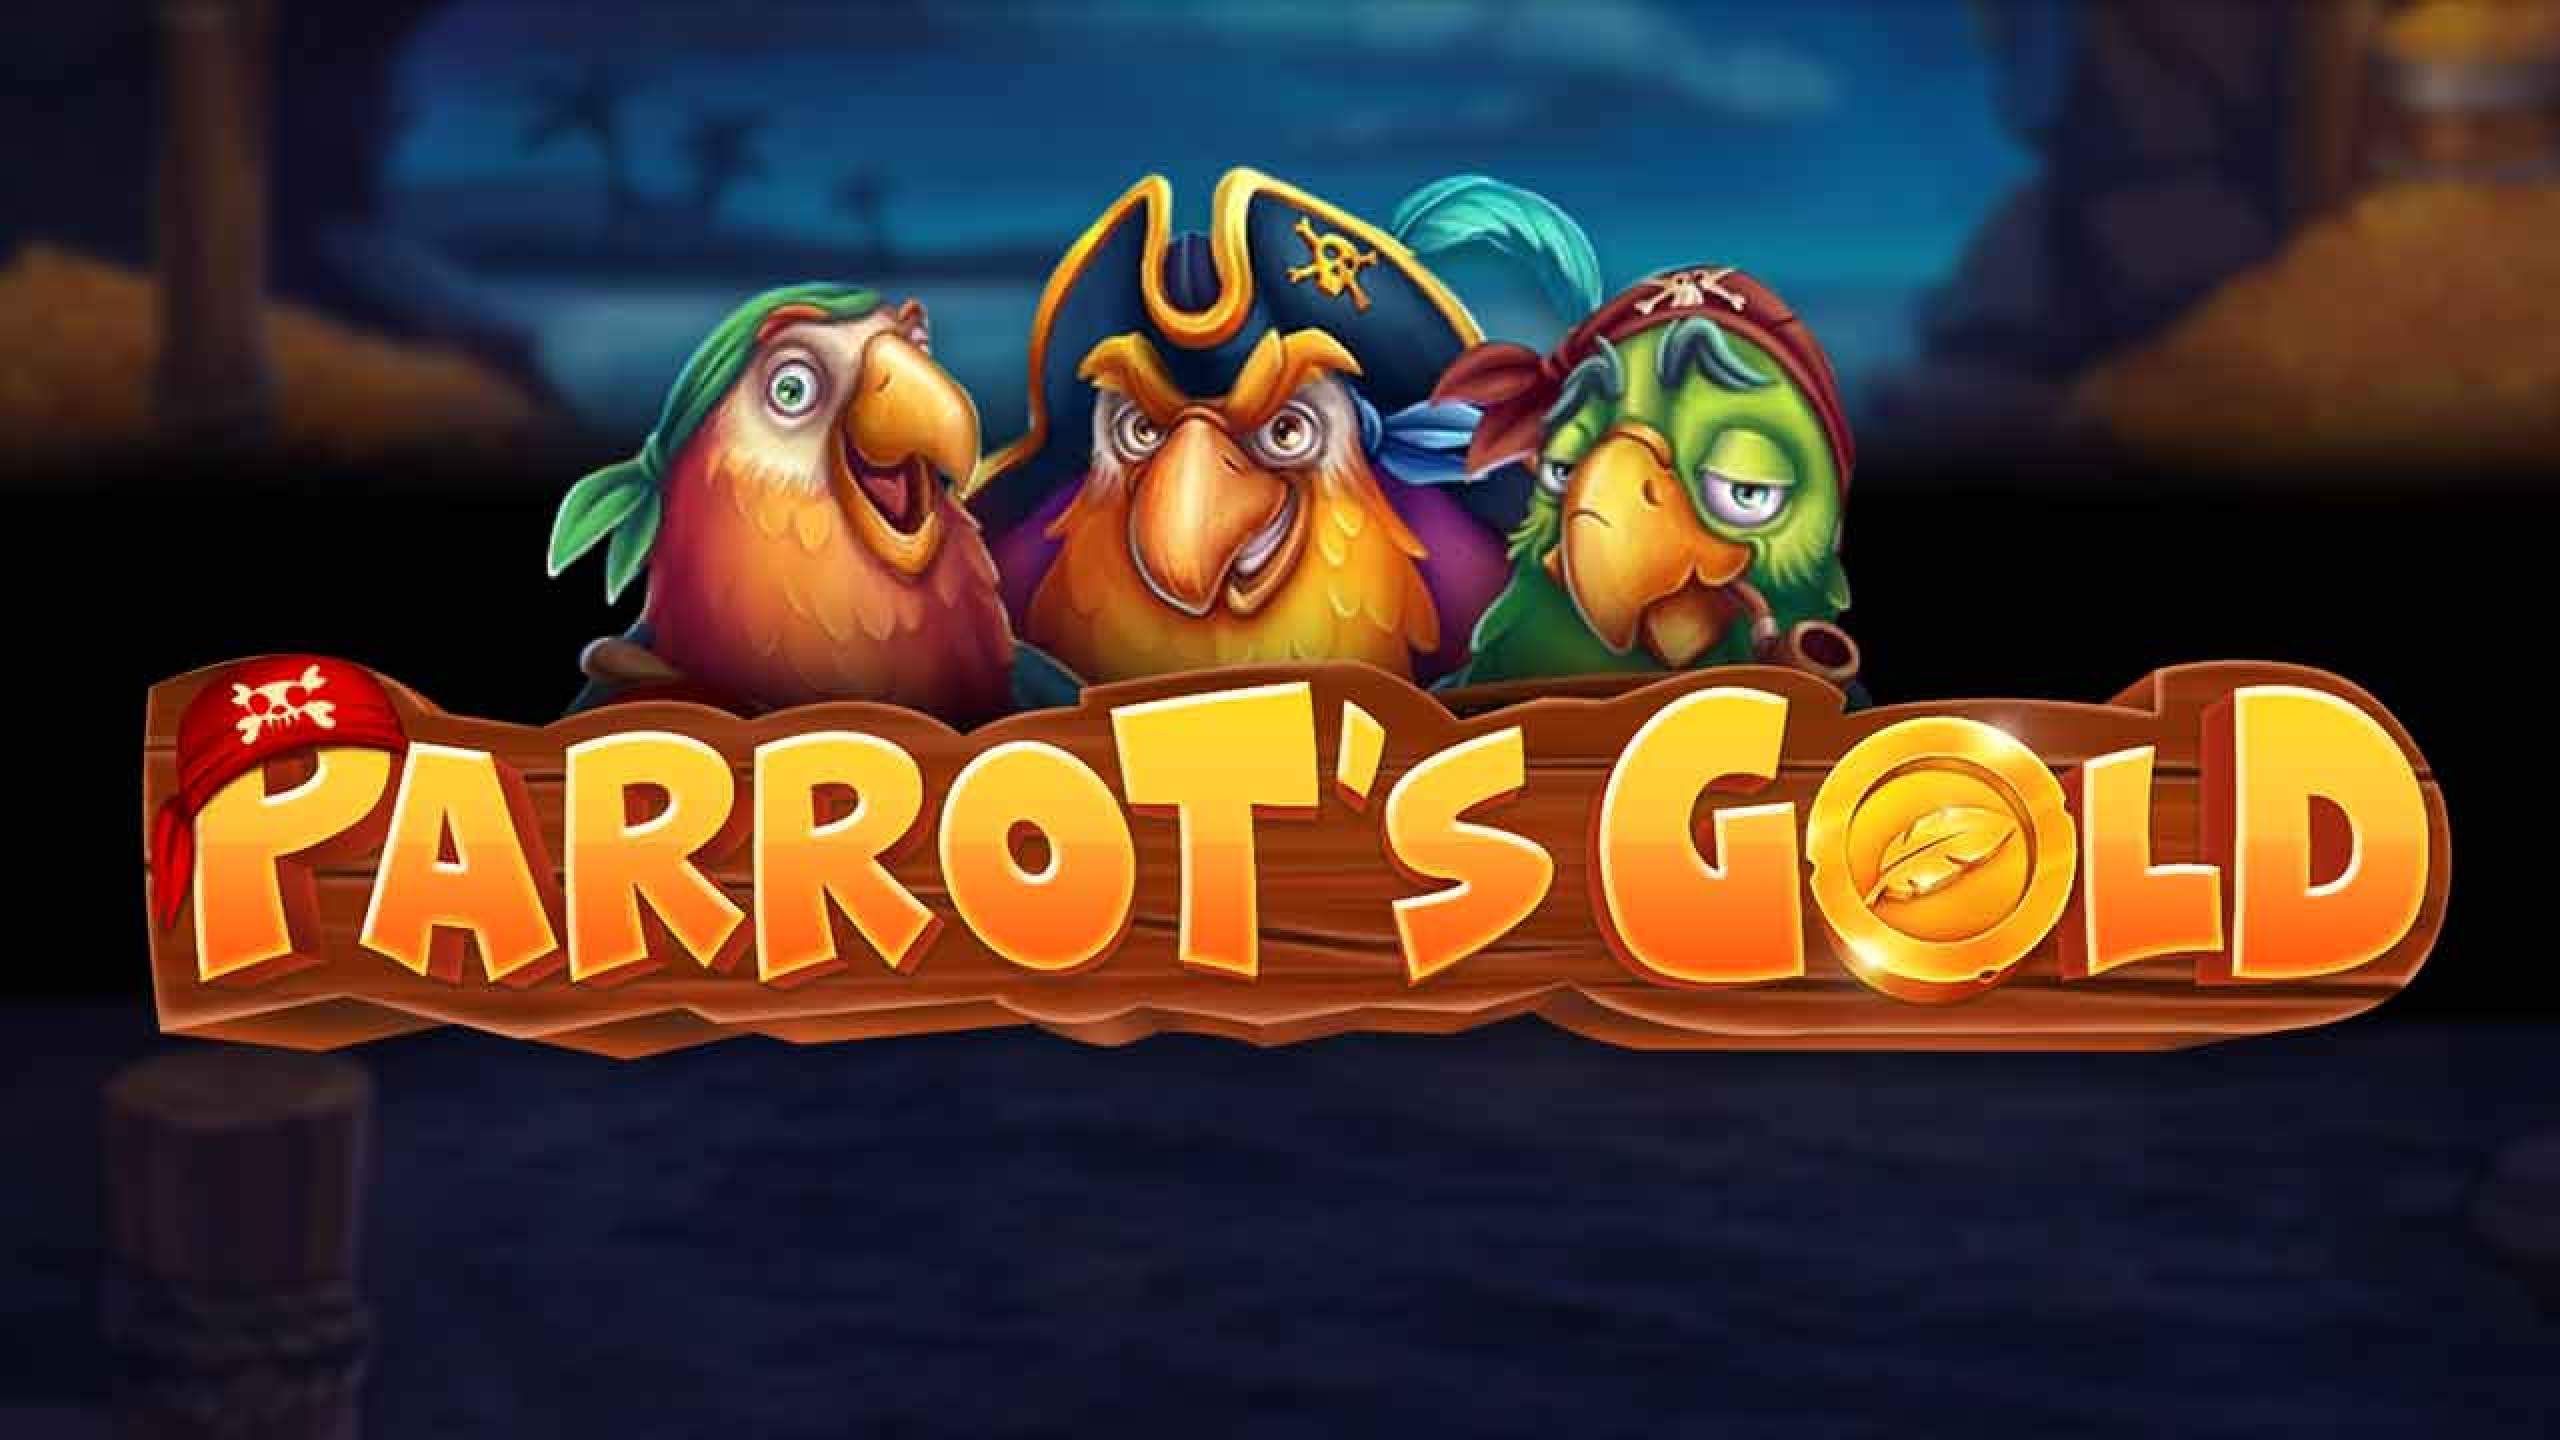 The Parrot's Gold Online Slot Demo Game by PariPlay